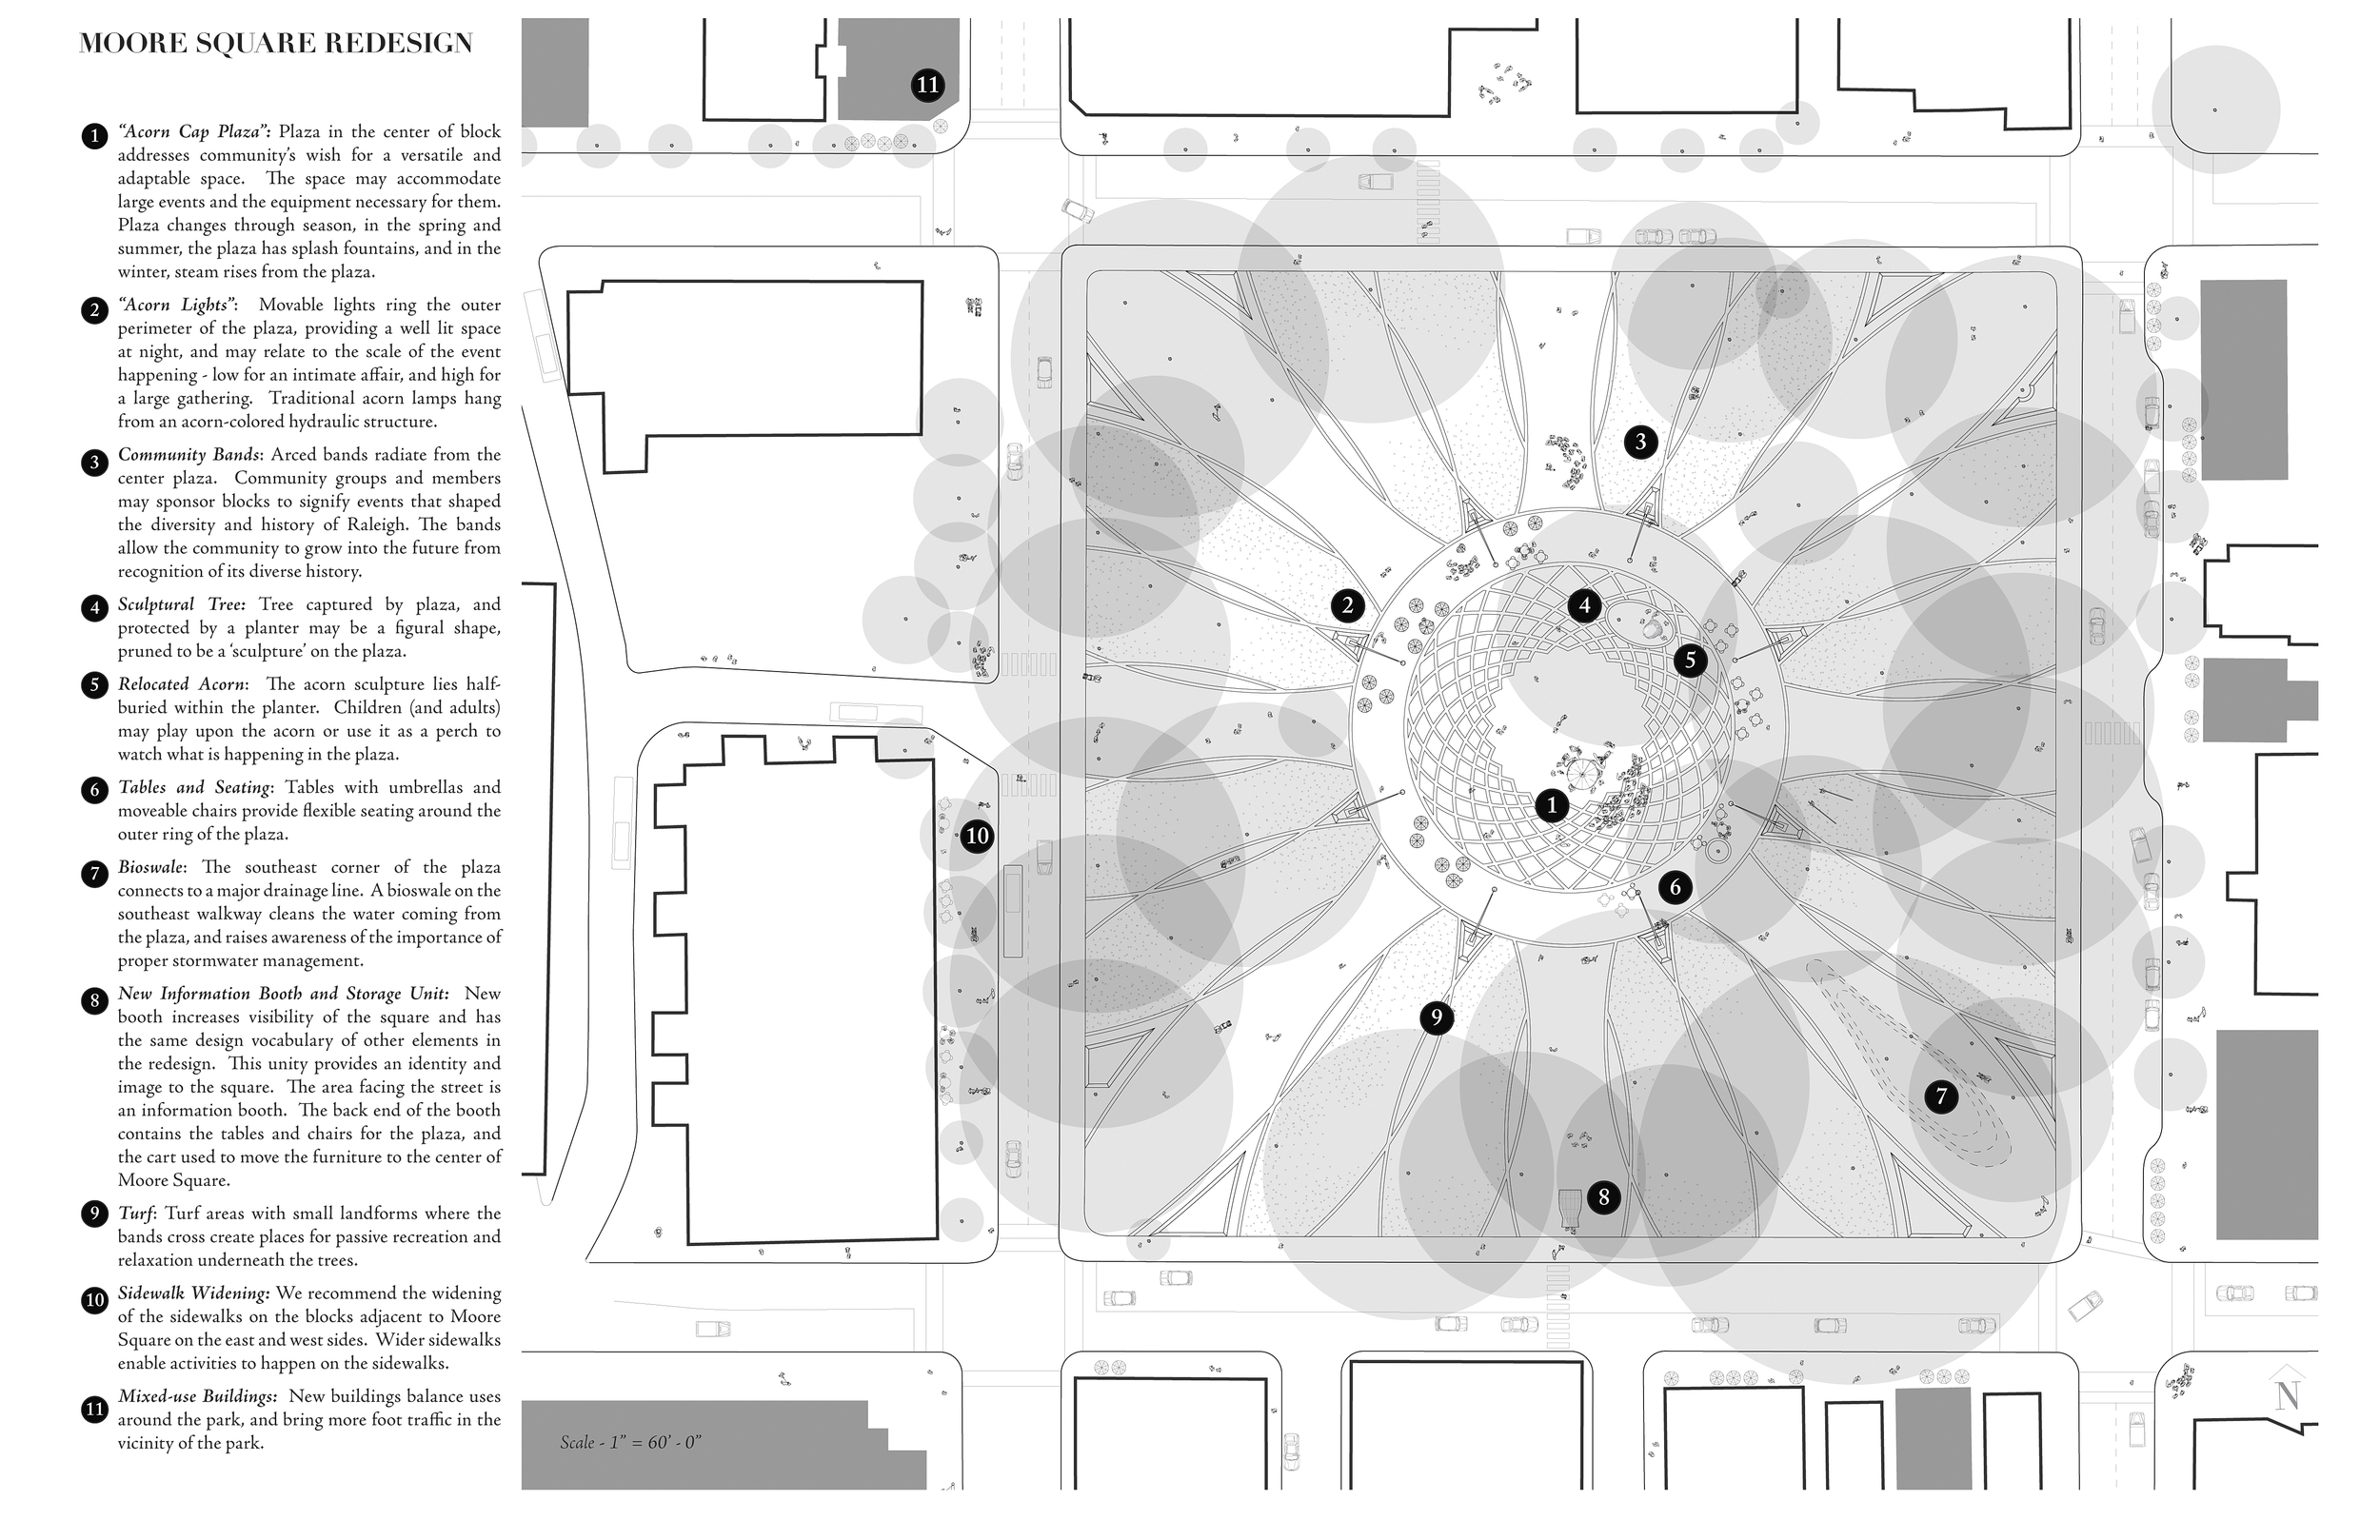 A plan of the park showing the acorn cap paving design in the center.(click for larger view on bigger screens)